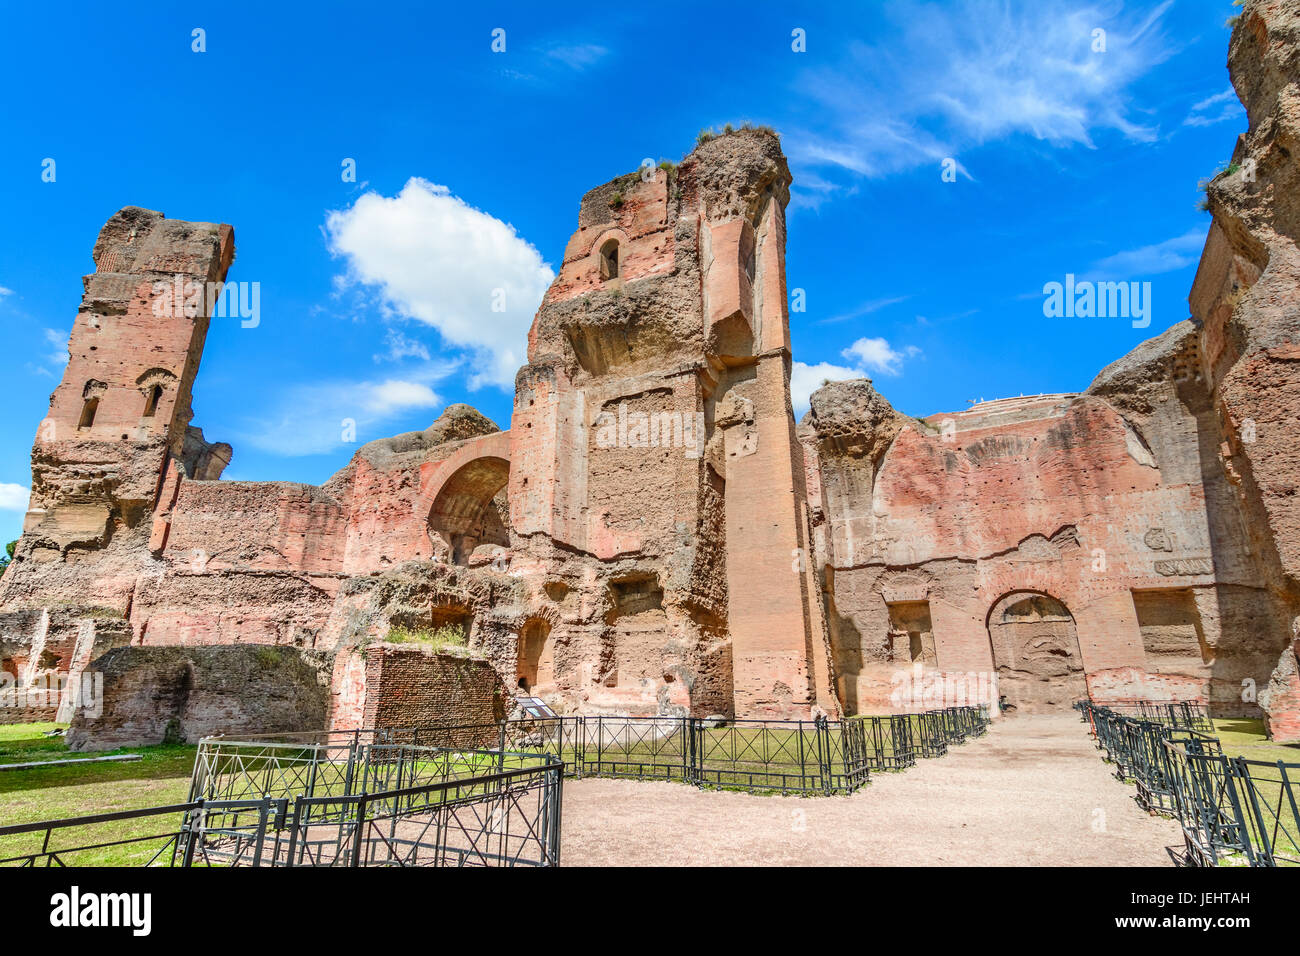 Terme di Caracalla or The Baths of Caracalla in Rome, Italy, were the city's second largest Roman public baths, - Stock Image